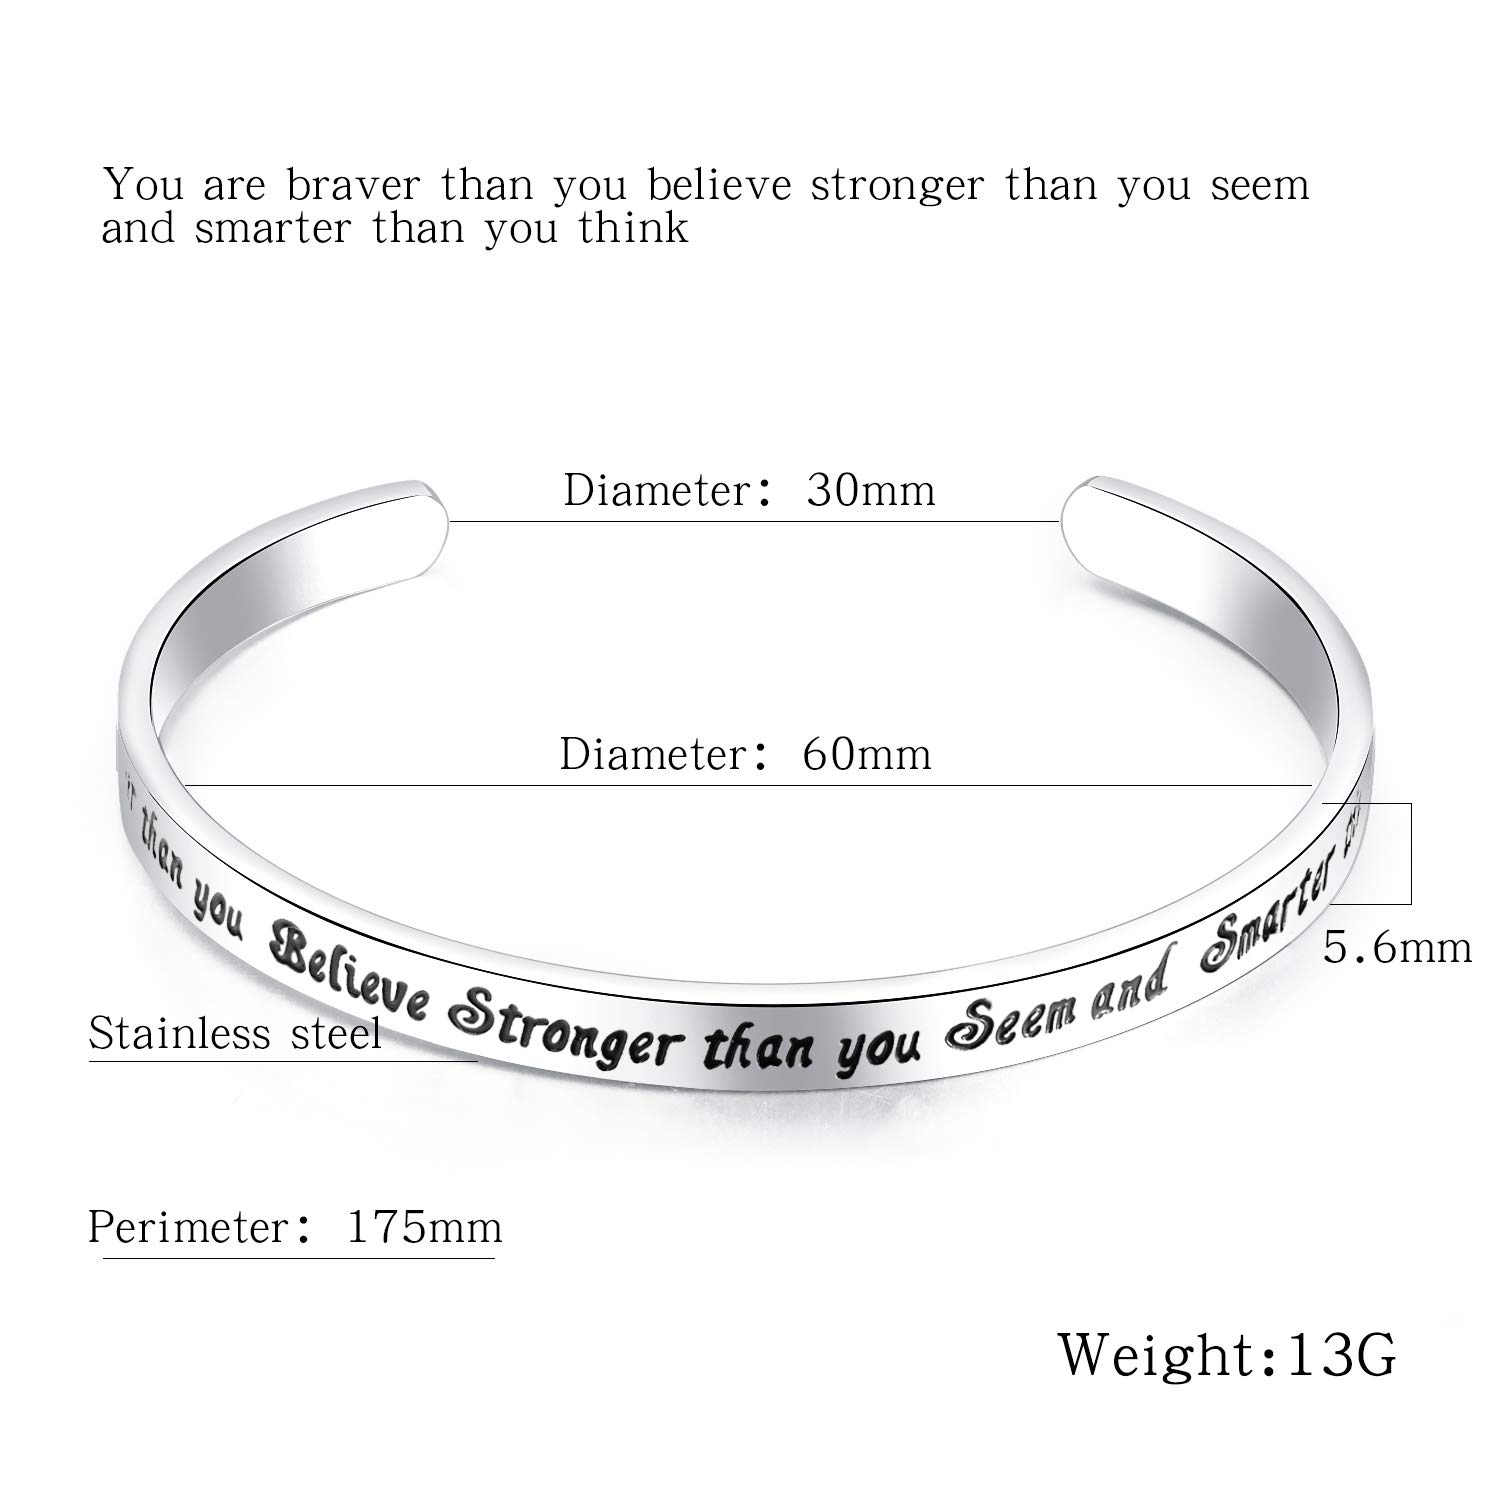 Kendasun Jewelry You are Braver Than You Believe Stronger Than You Seem and Smarter Than You Think Cuff Bangle Bracelet